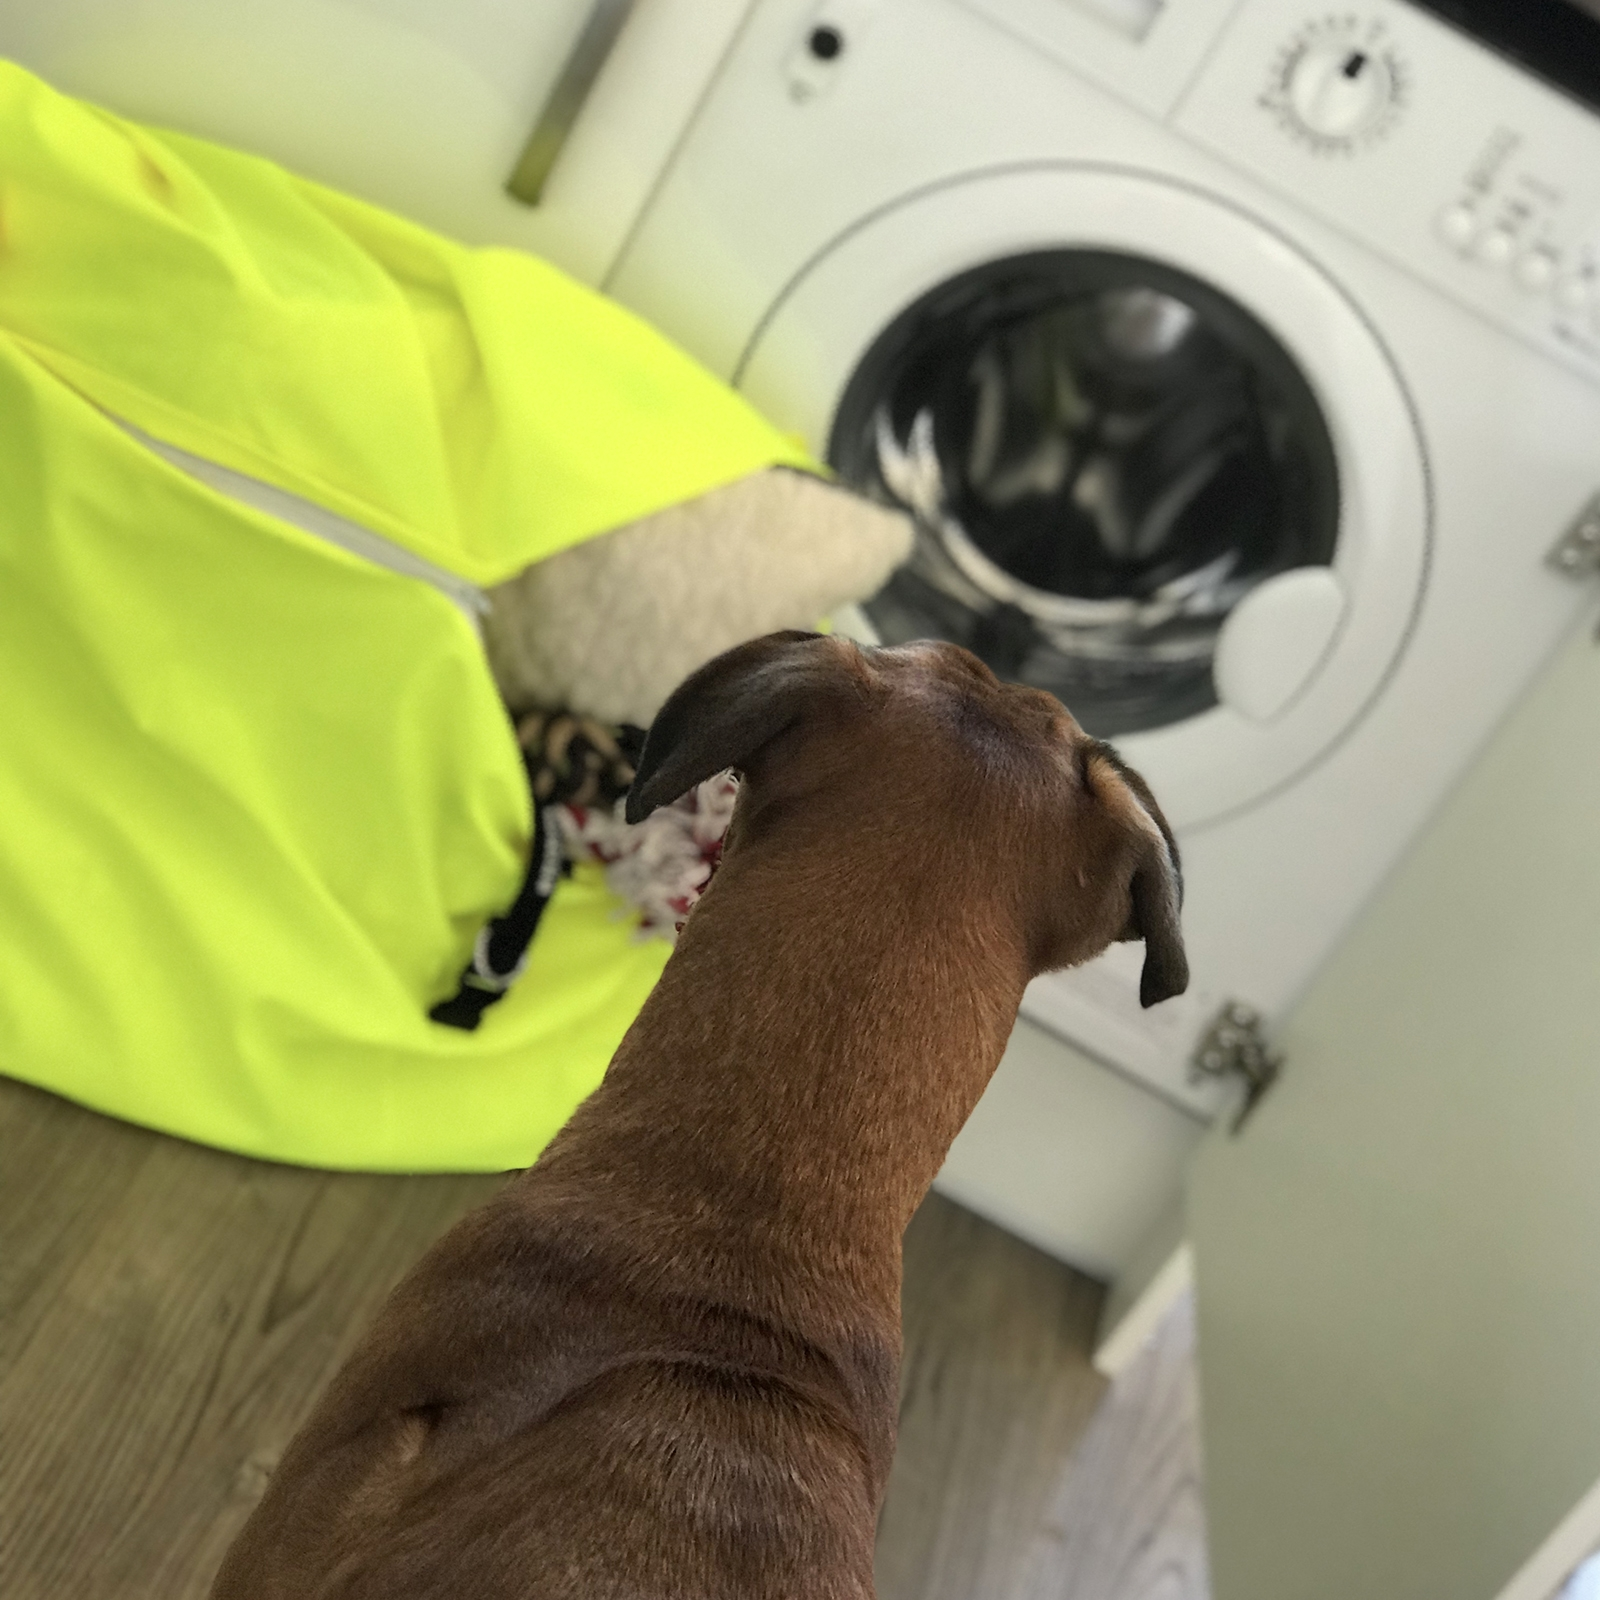 boxer dog sitting in front of a washing machine waiting for toys to be washed in Laundry Bag